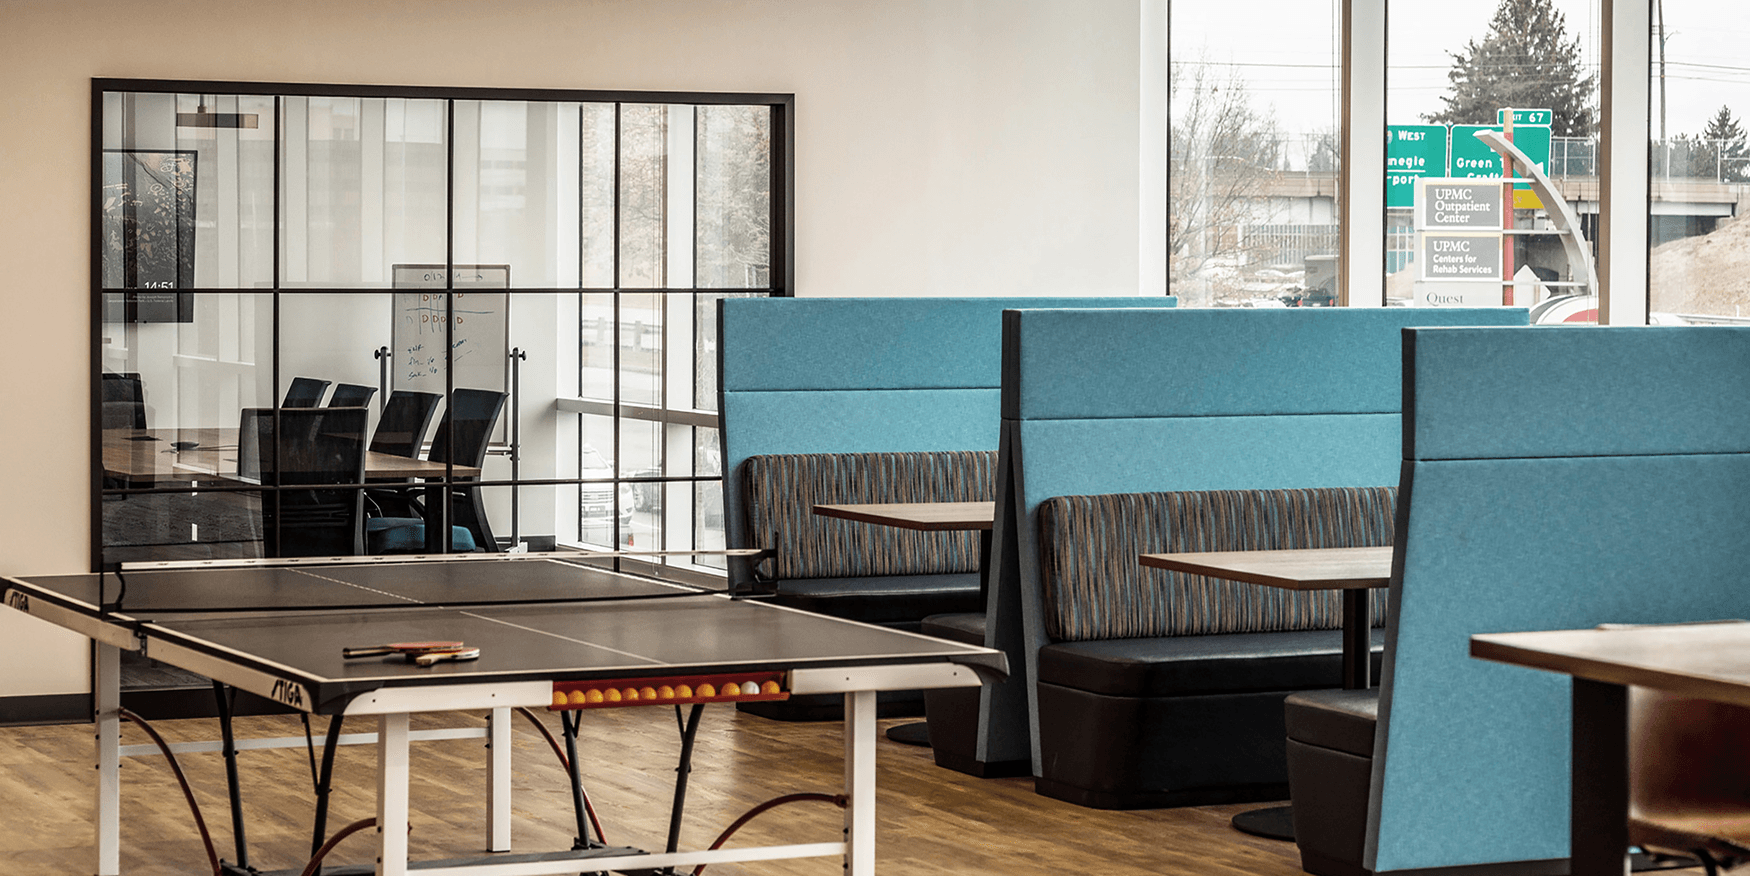 collaborative workspace with ping pong table and booths